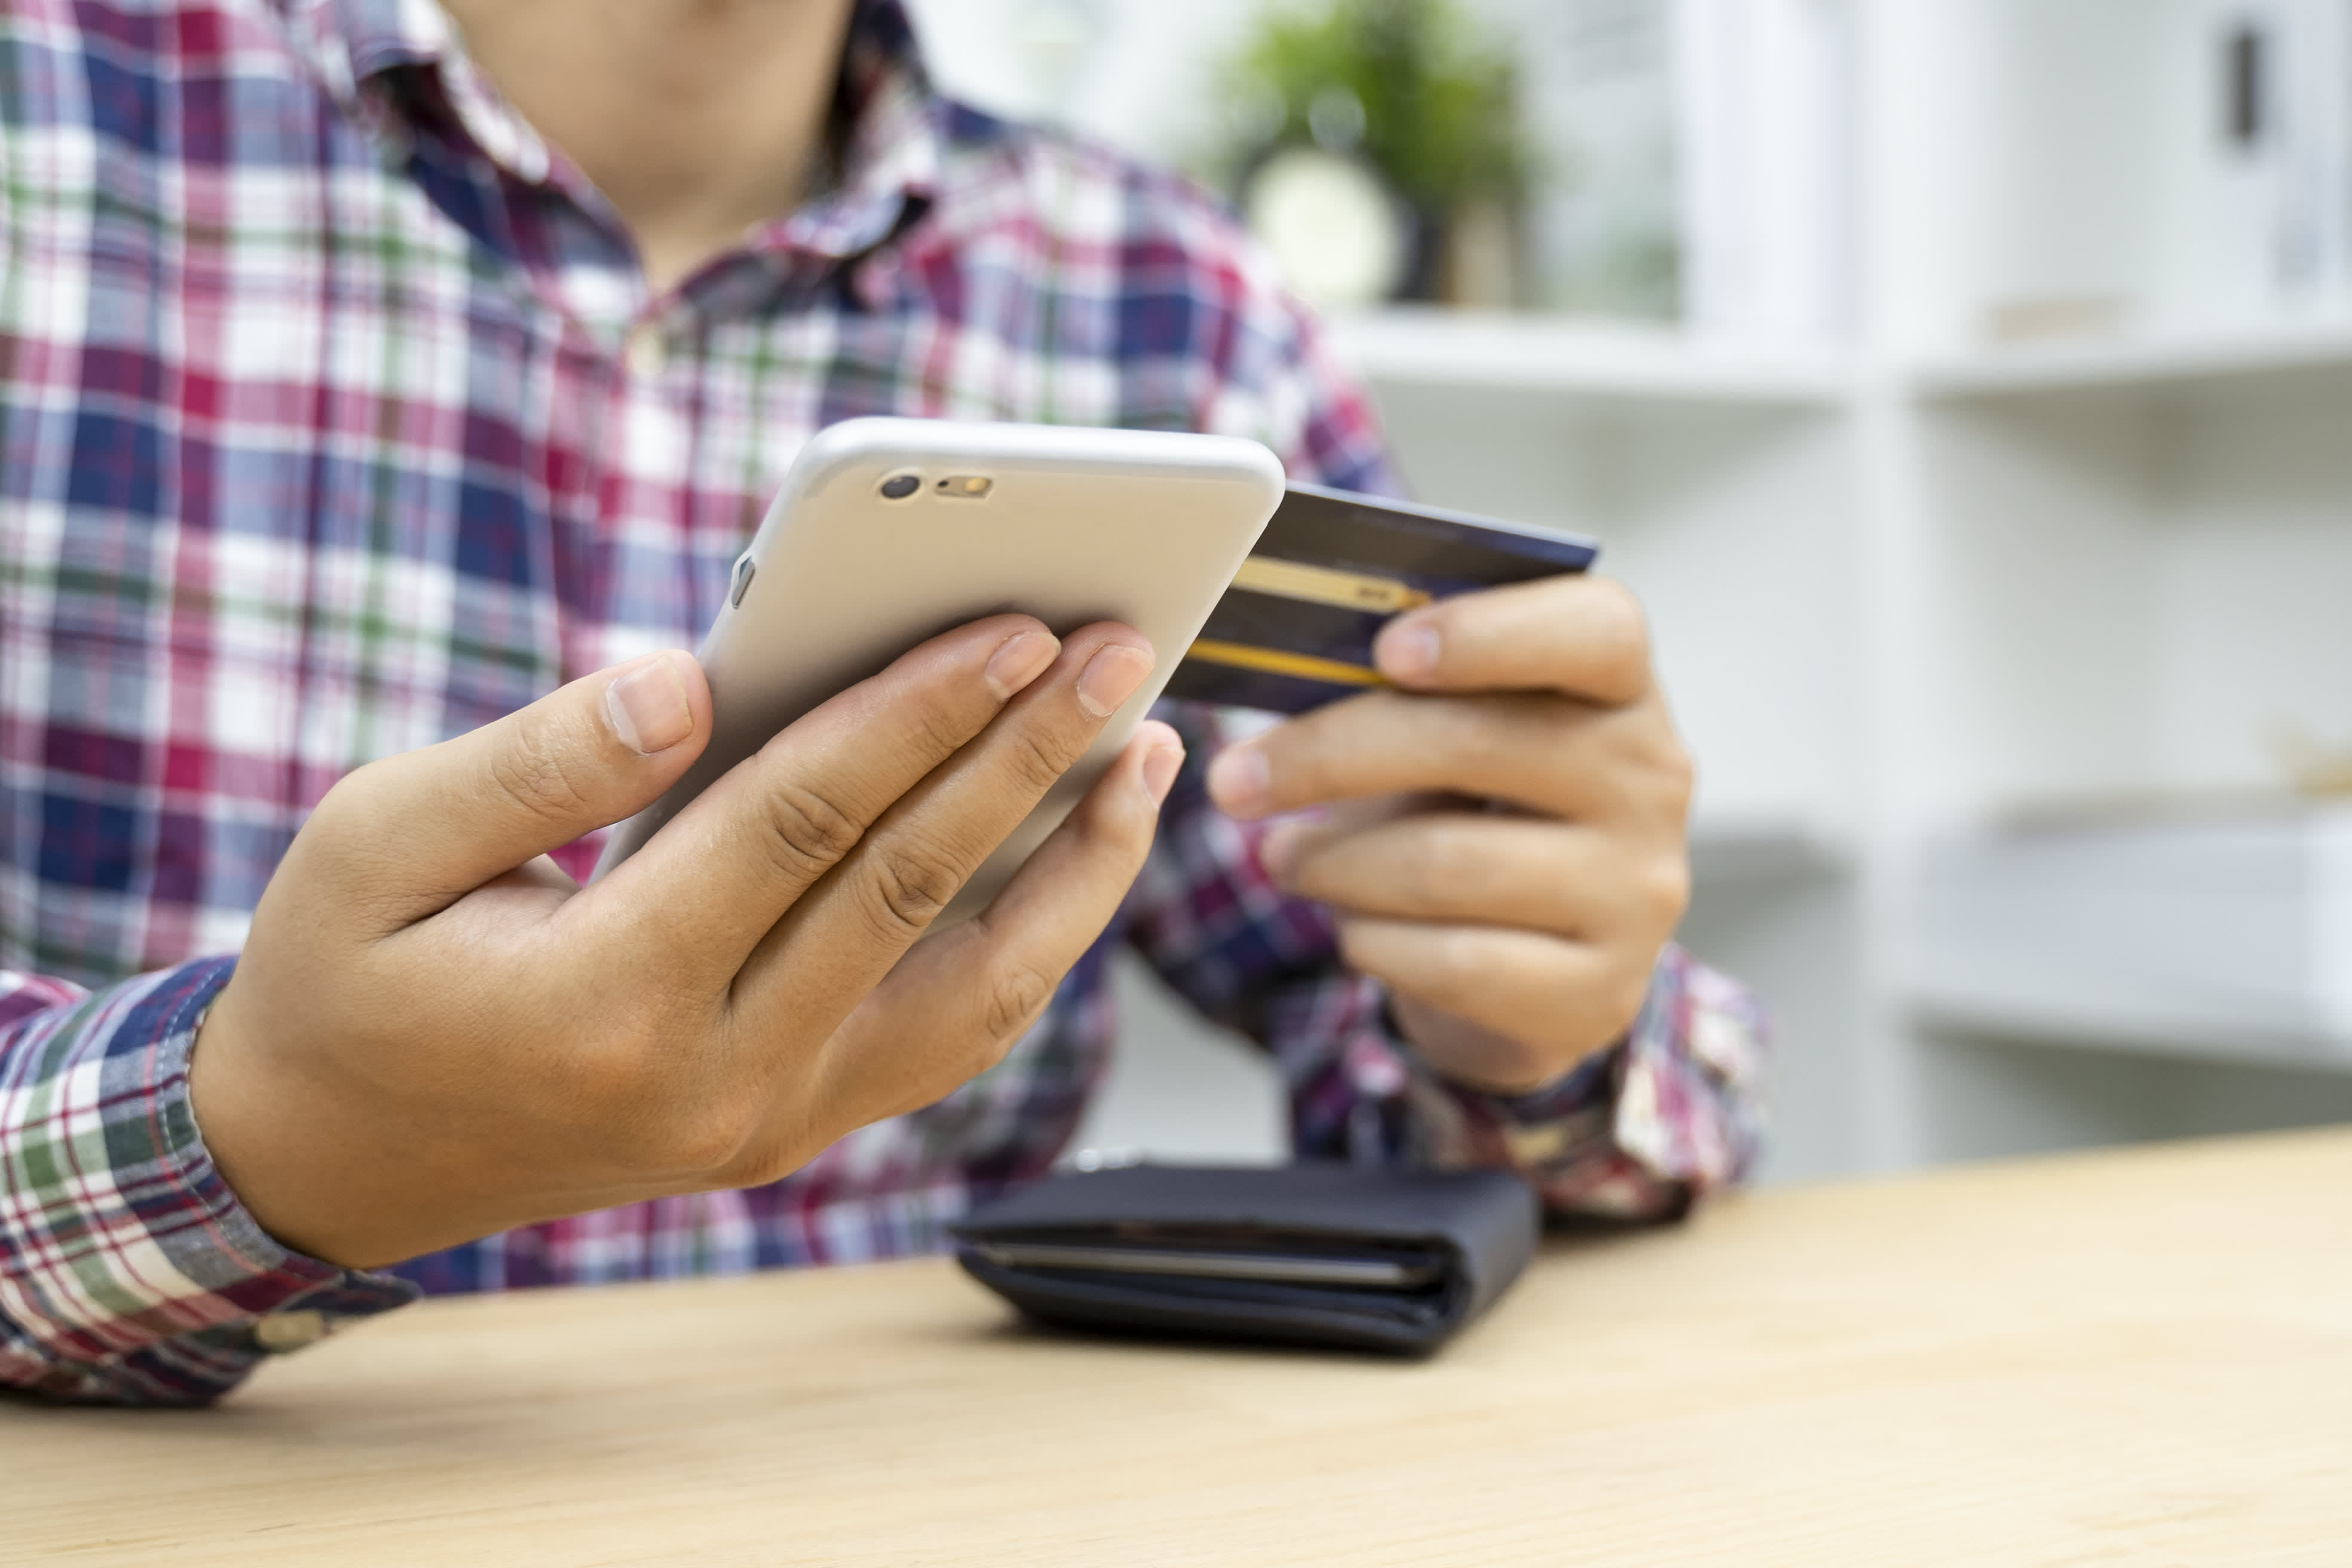 Payment apps may pose a coronavirus scam risk, according to AARP